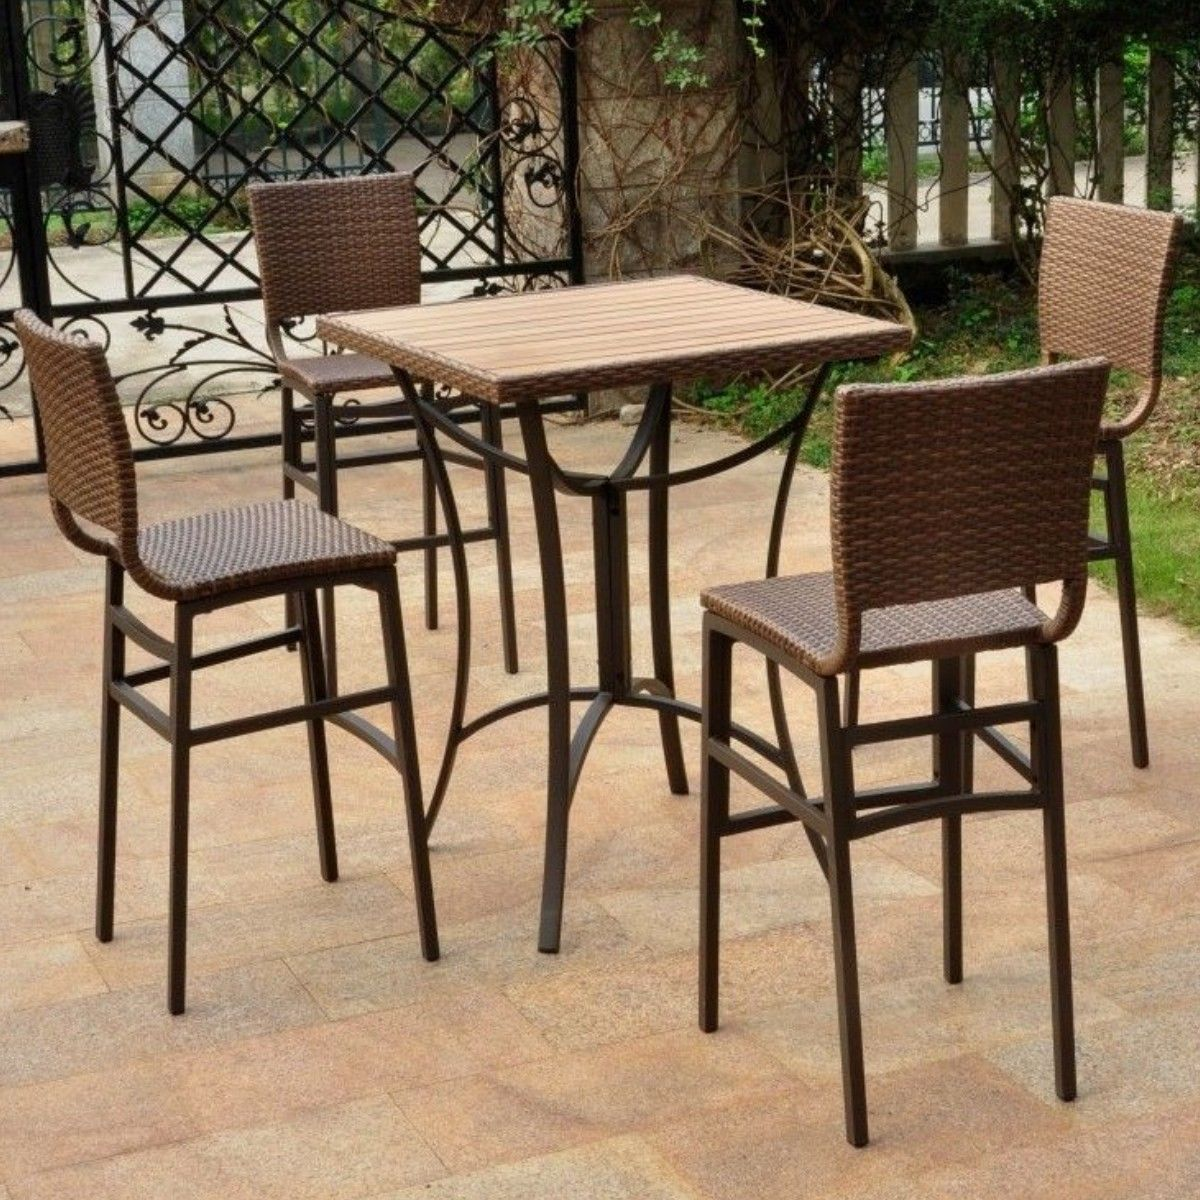 bar height bistro dining set wood table 4 chairs resin wicker 5